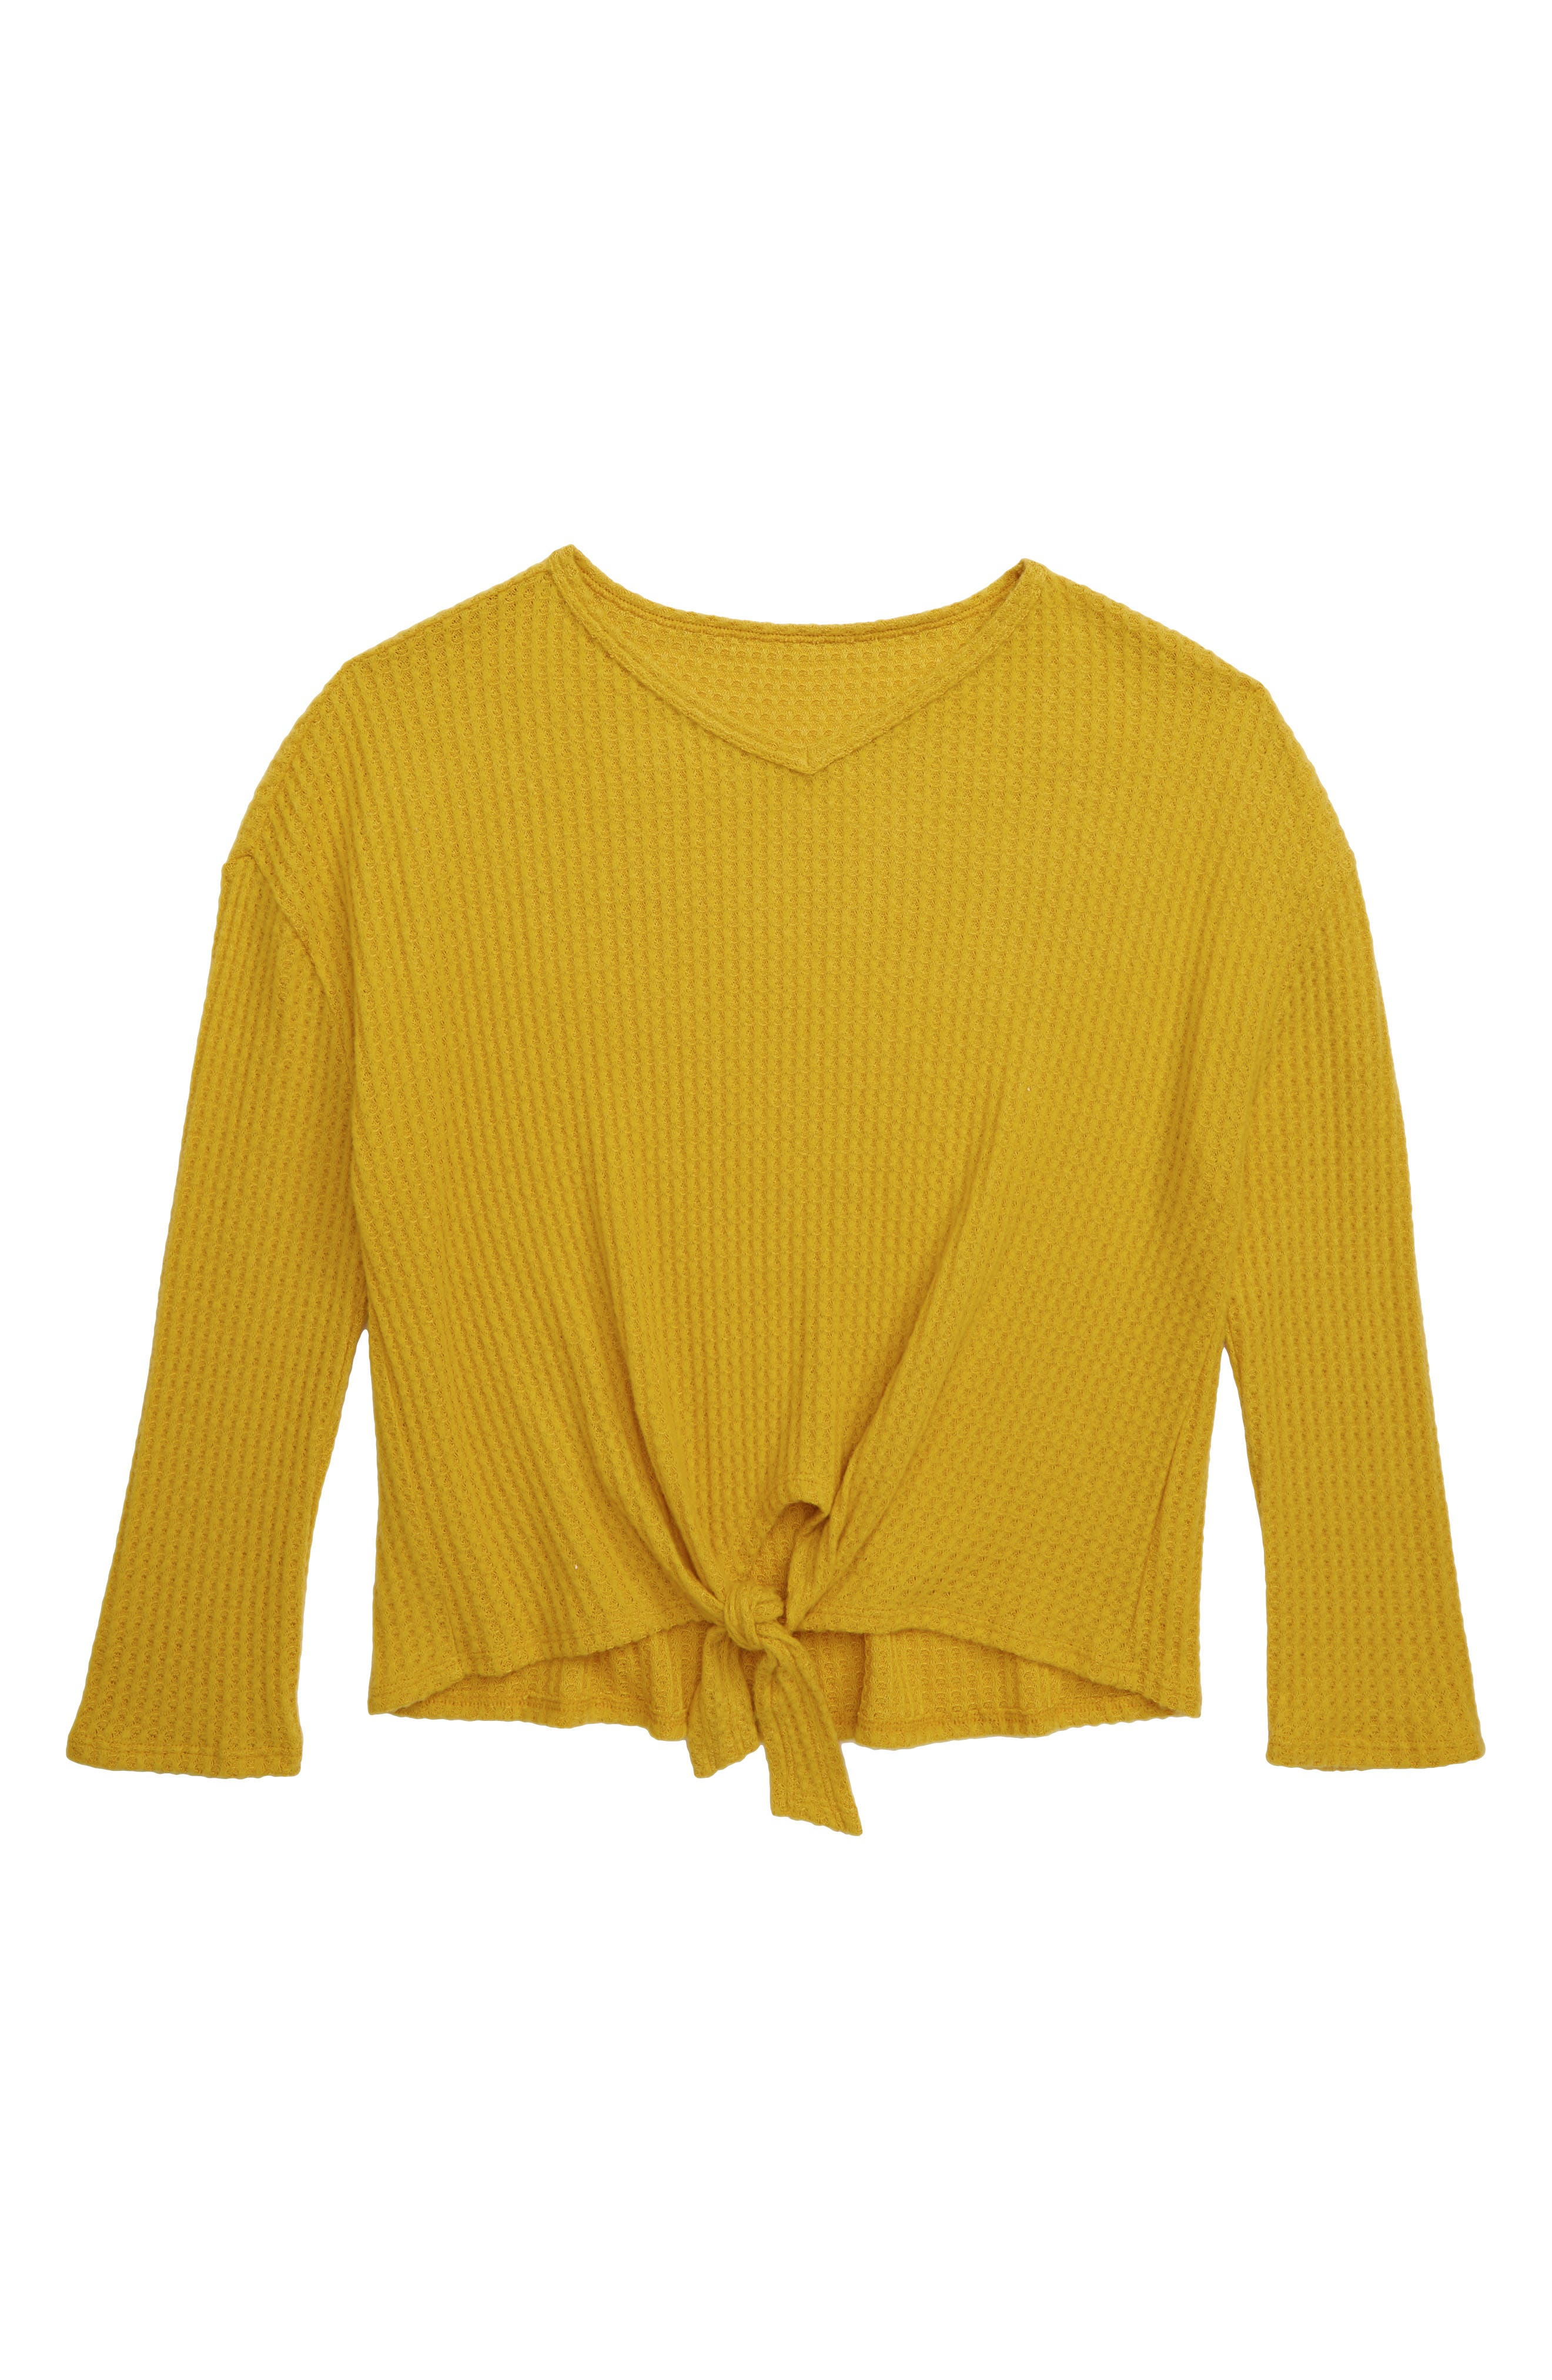 Girls Tucker  Tate Coziest Ever Waffle Top Size S (78)  Yellow